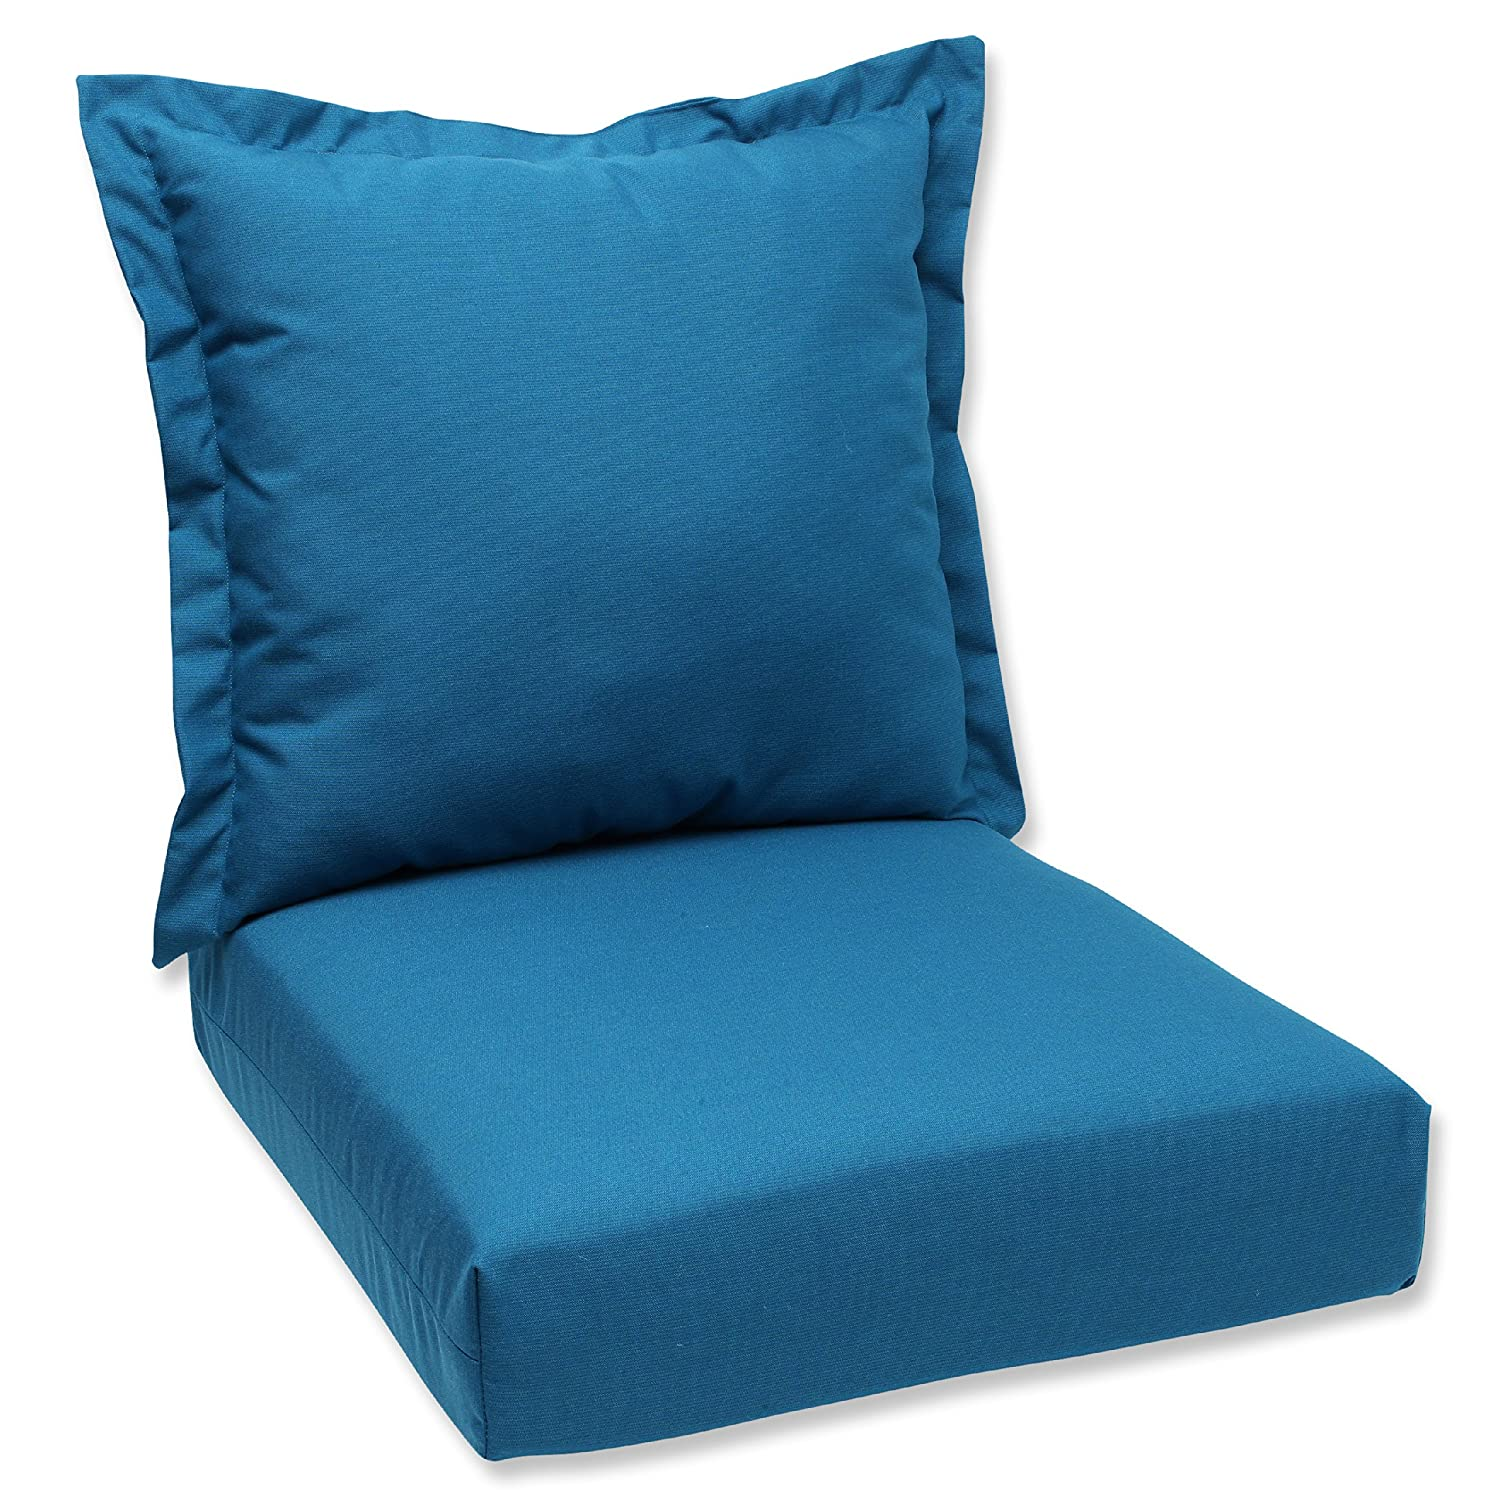 Amazon: Pillow Perfect Deep Seating Cushion And Back Pillow With  Peacock Sunbrella Fabric: Home & Kitchen